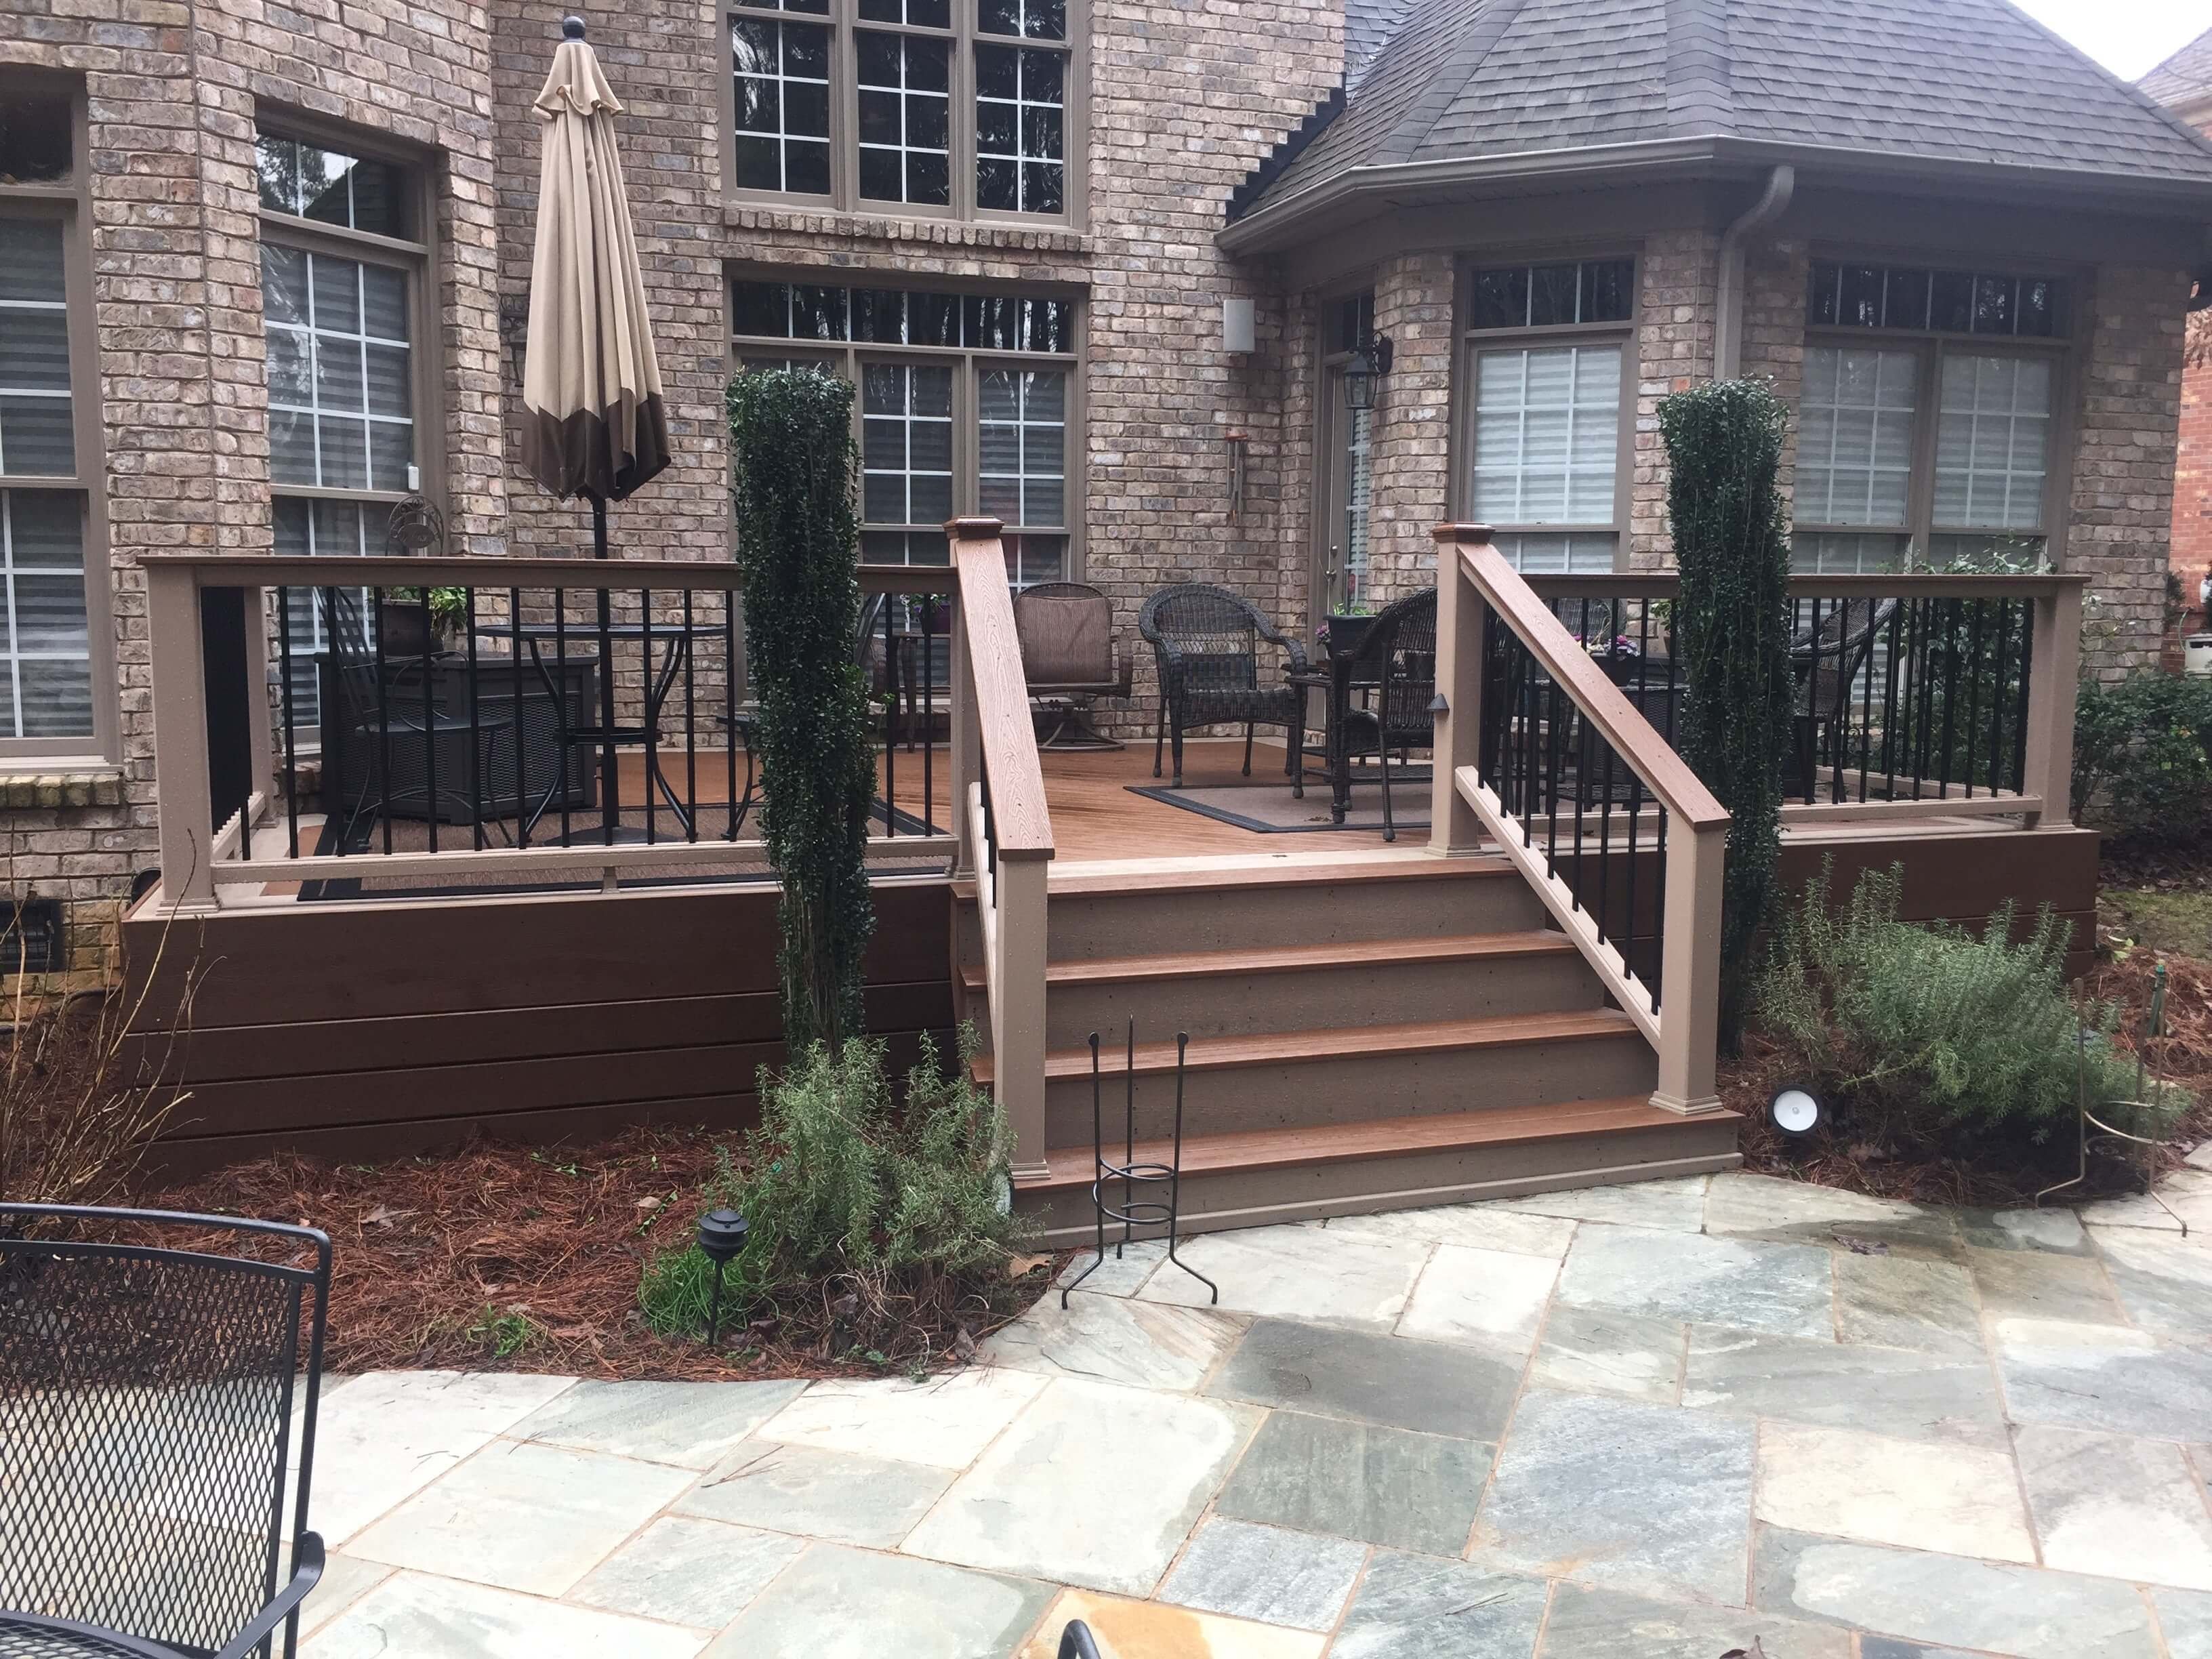 wood deck with chairs and plants